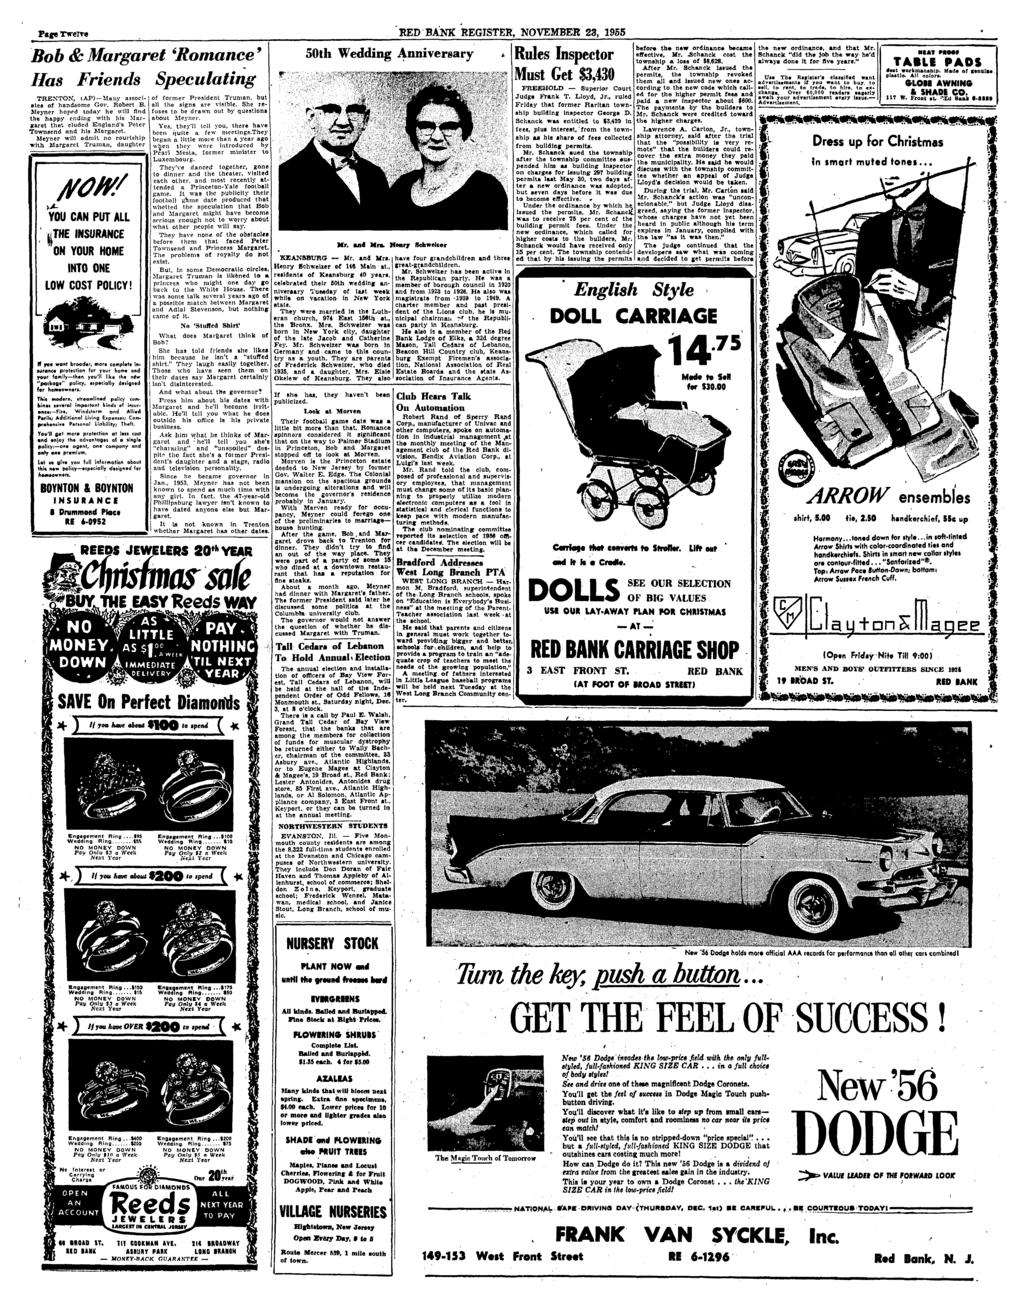 Red Bank Register Adult School Class On Field Trip 2 County Glove Compartment Wiring Diagram For 1953 Studebaker Champion And Commander Page Twerre November 23 1955 Bob Margaret Romance 9 Has